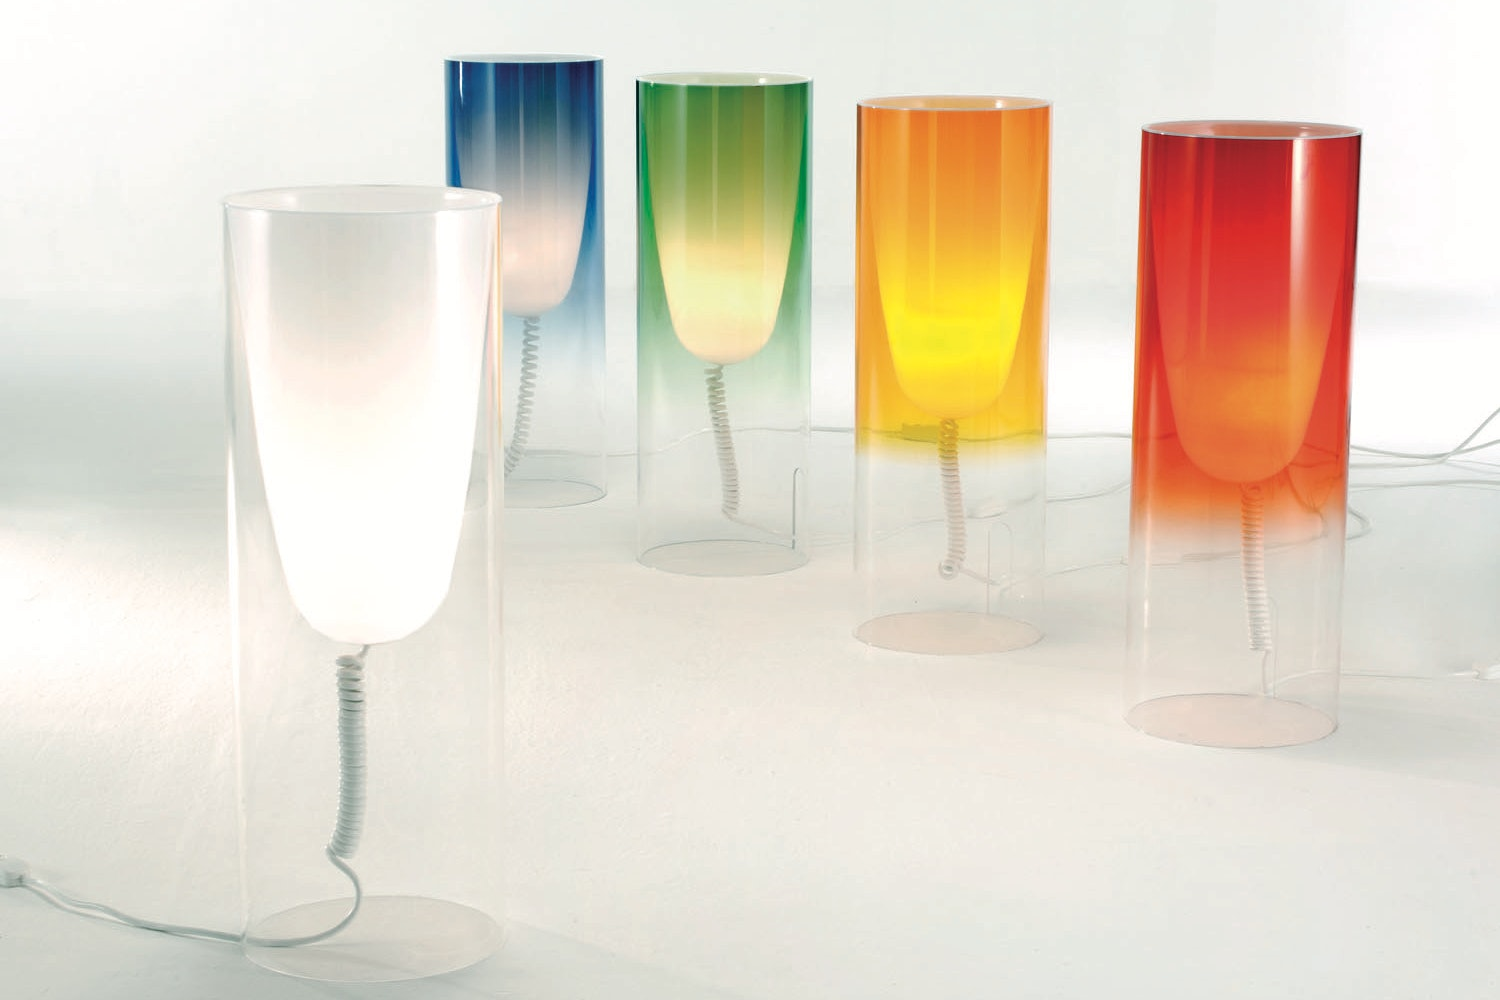 Toobe Table Lamp by Ferruccio Laviani for Kartell